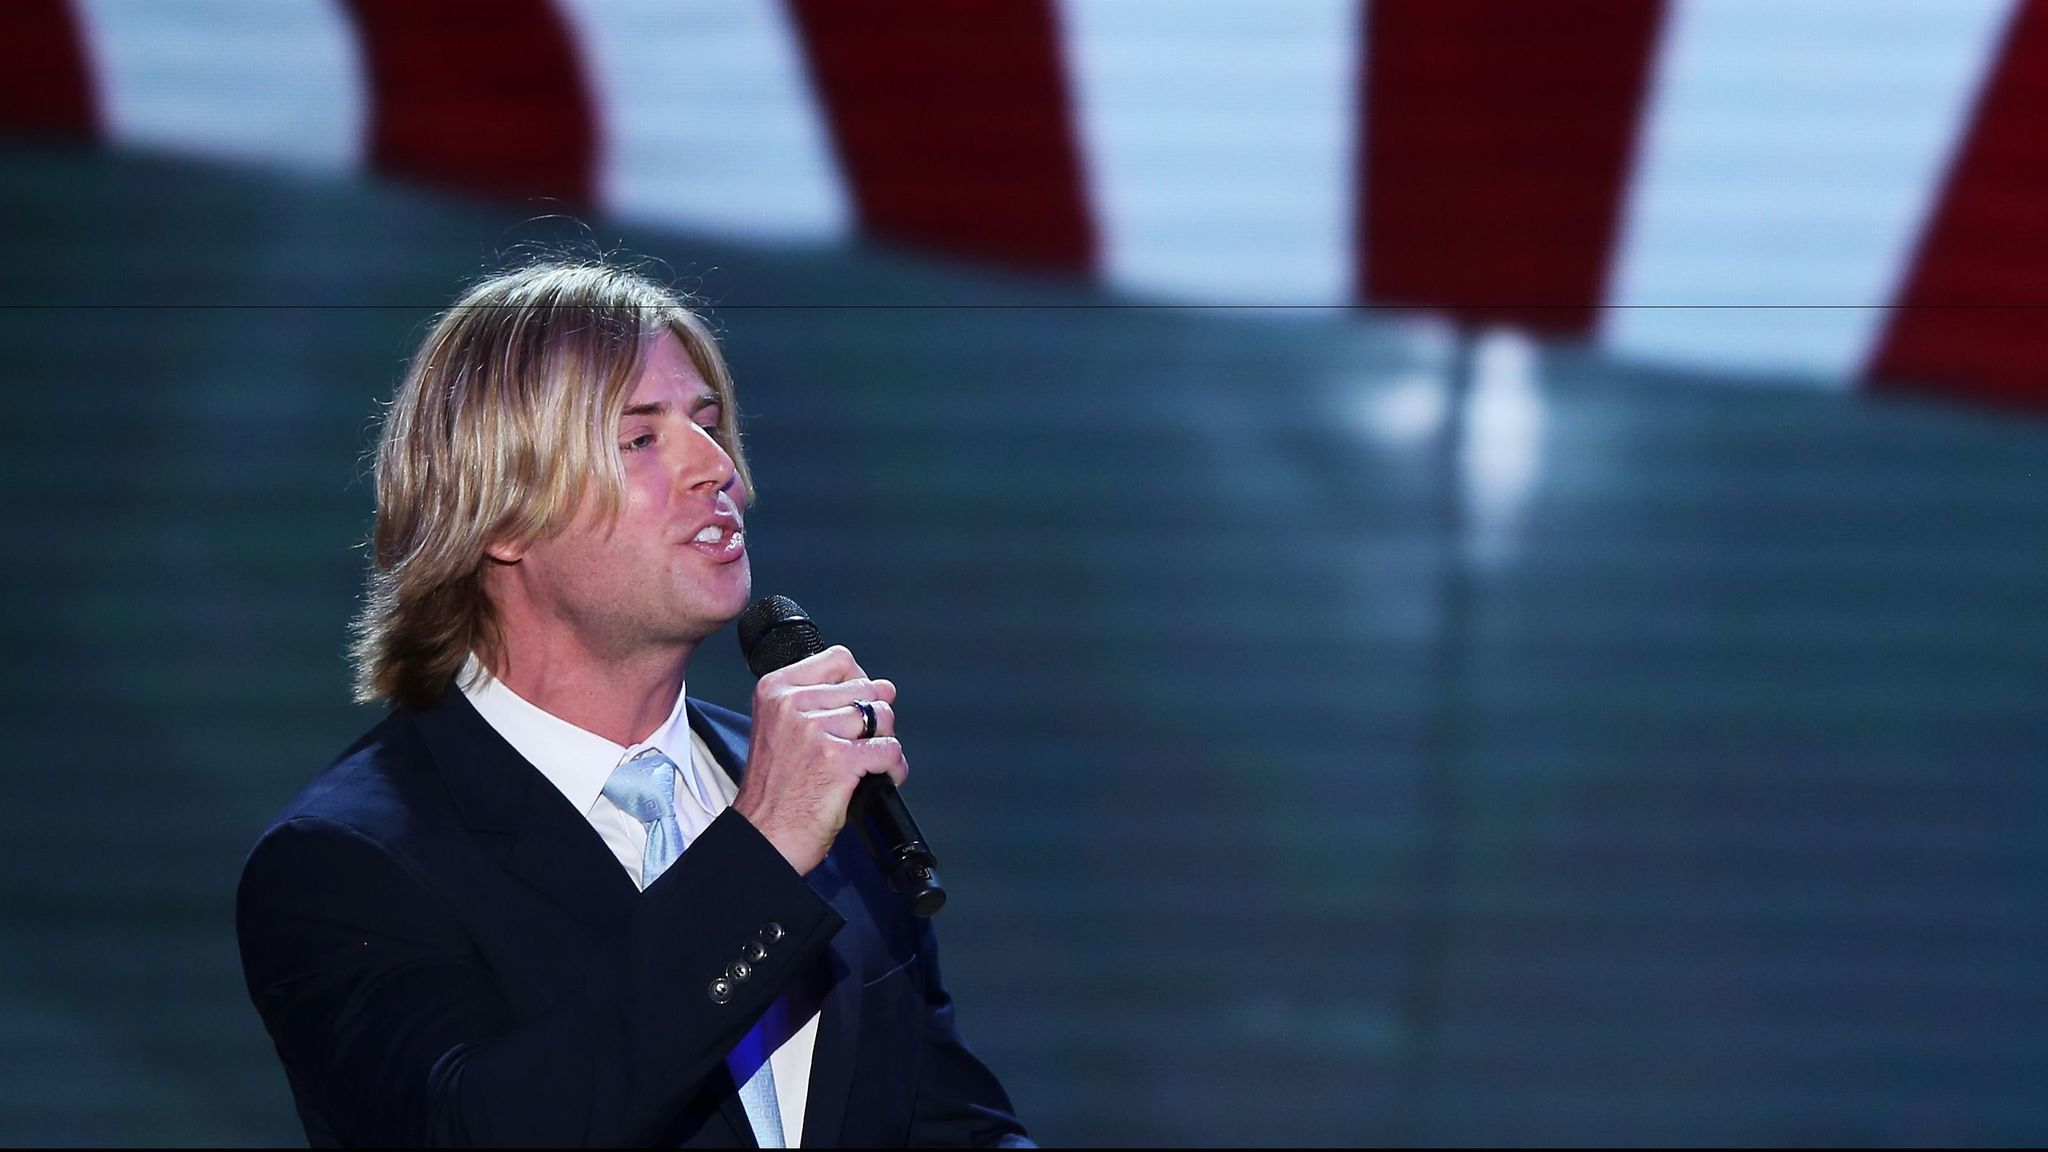 Beau Davidson performs during Republican National Convention in 2012.